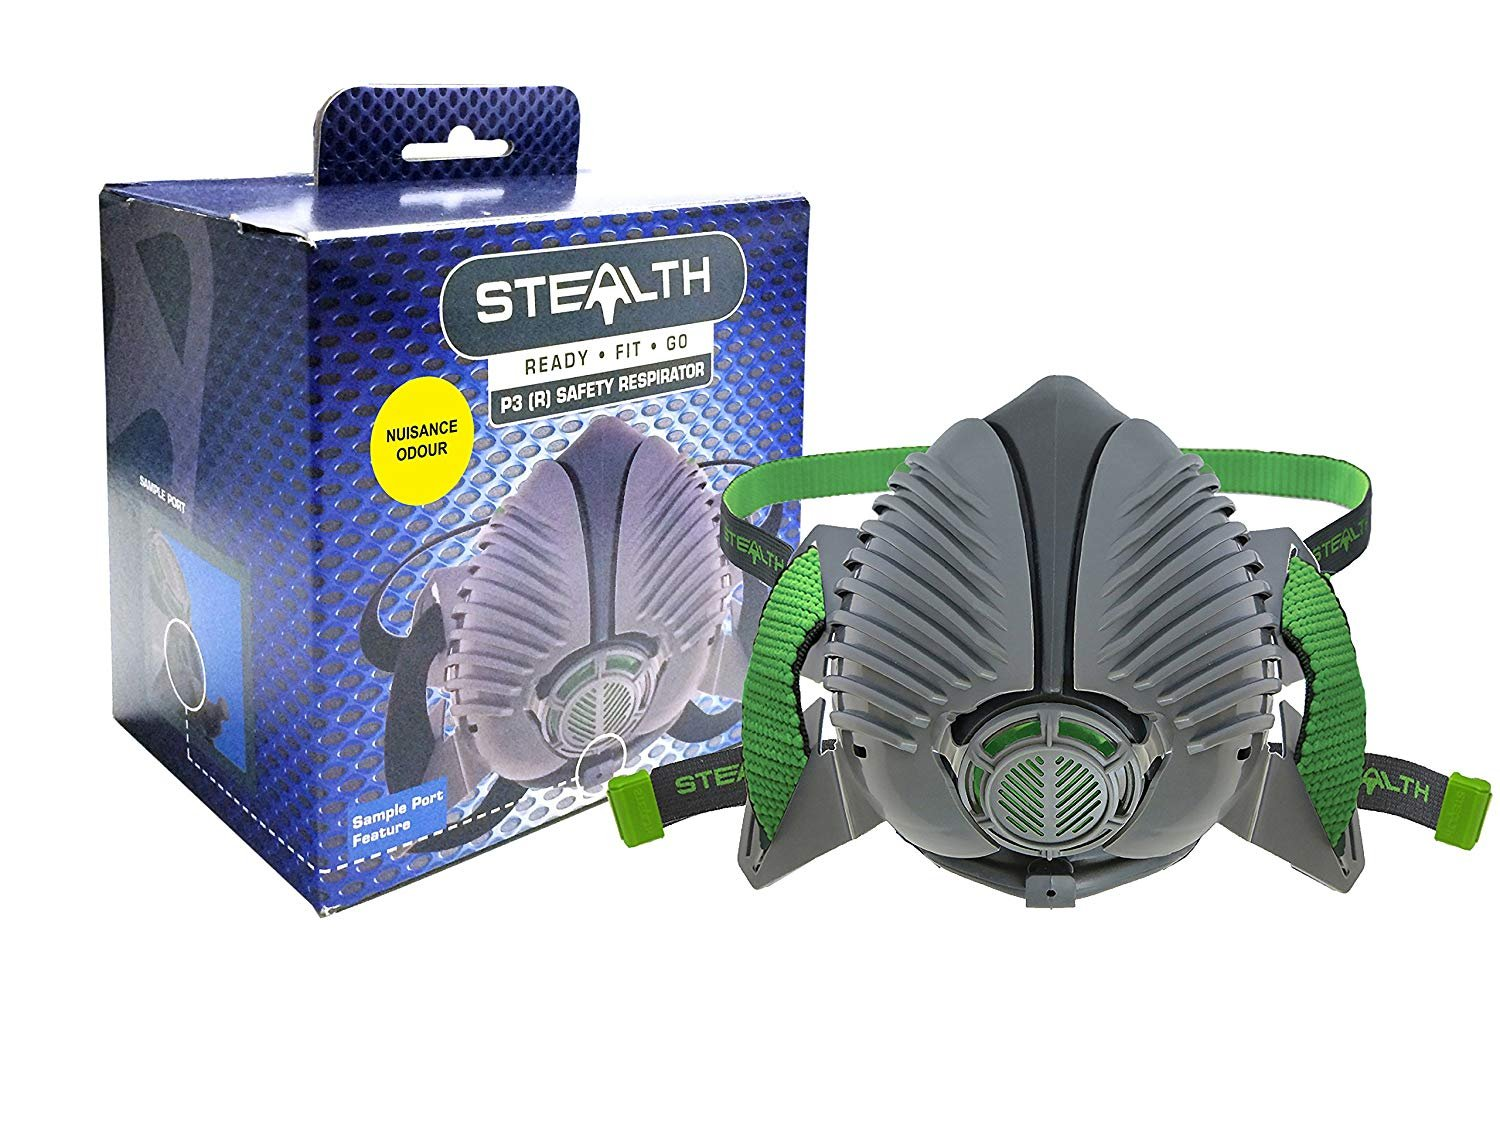 Stealth Reusable Half Mask P3 Safety Respirator - for Dust, Welding & Liquid Mists – with 2x P3 (R) Fitted Filters (Medium/Large) Welding & Liquid Mists - with 2x P3 (R) Fitted Filters (Medium/Large)